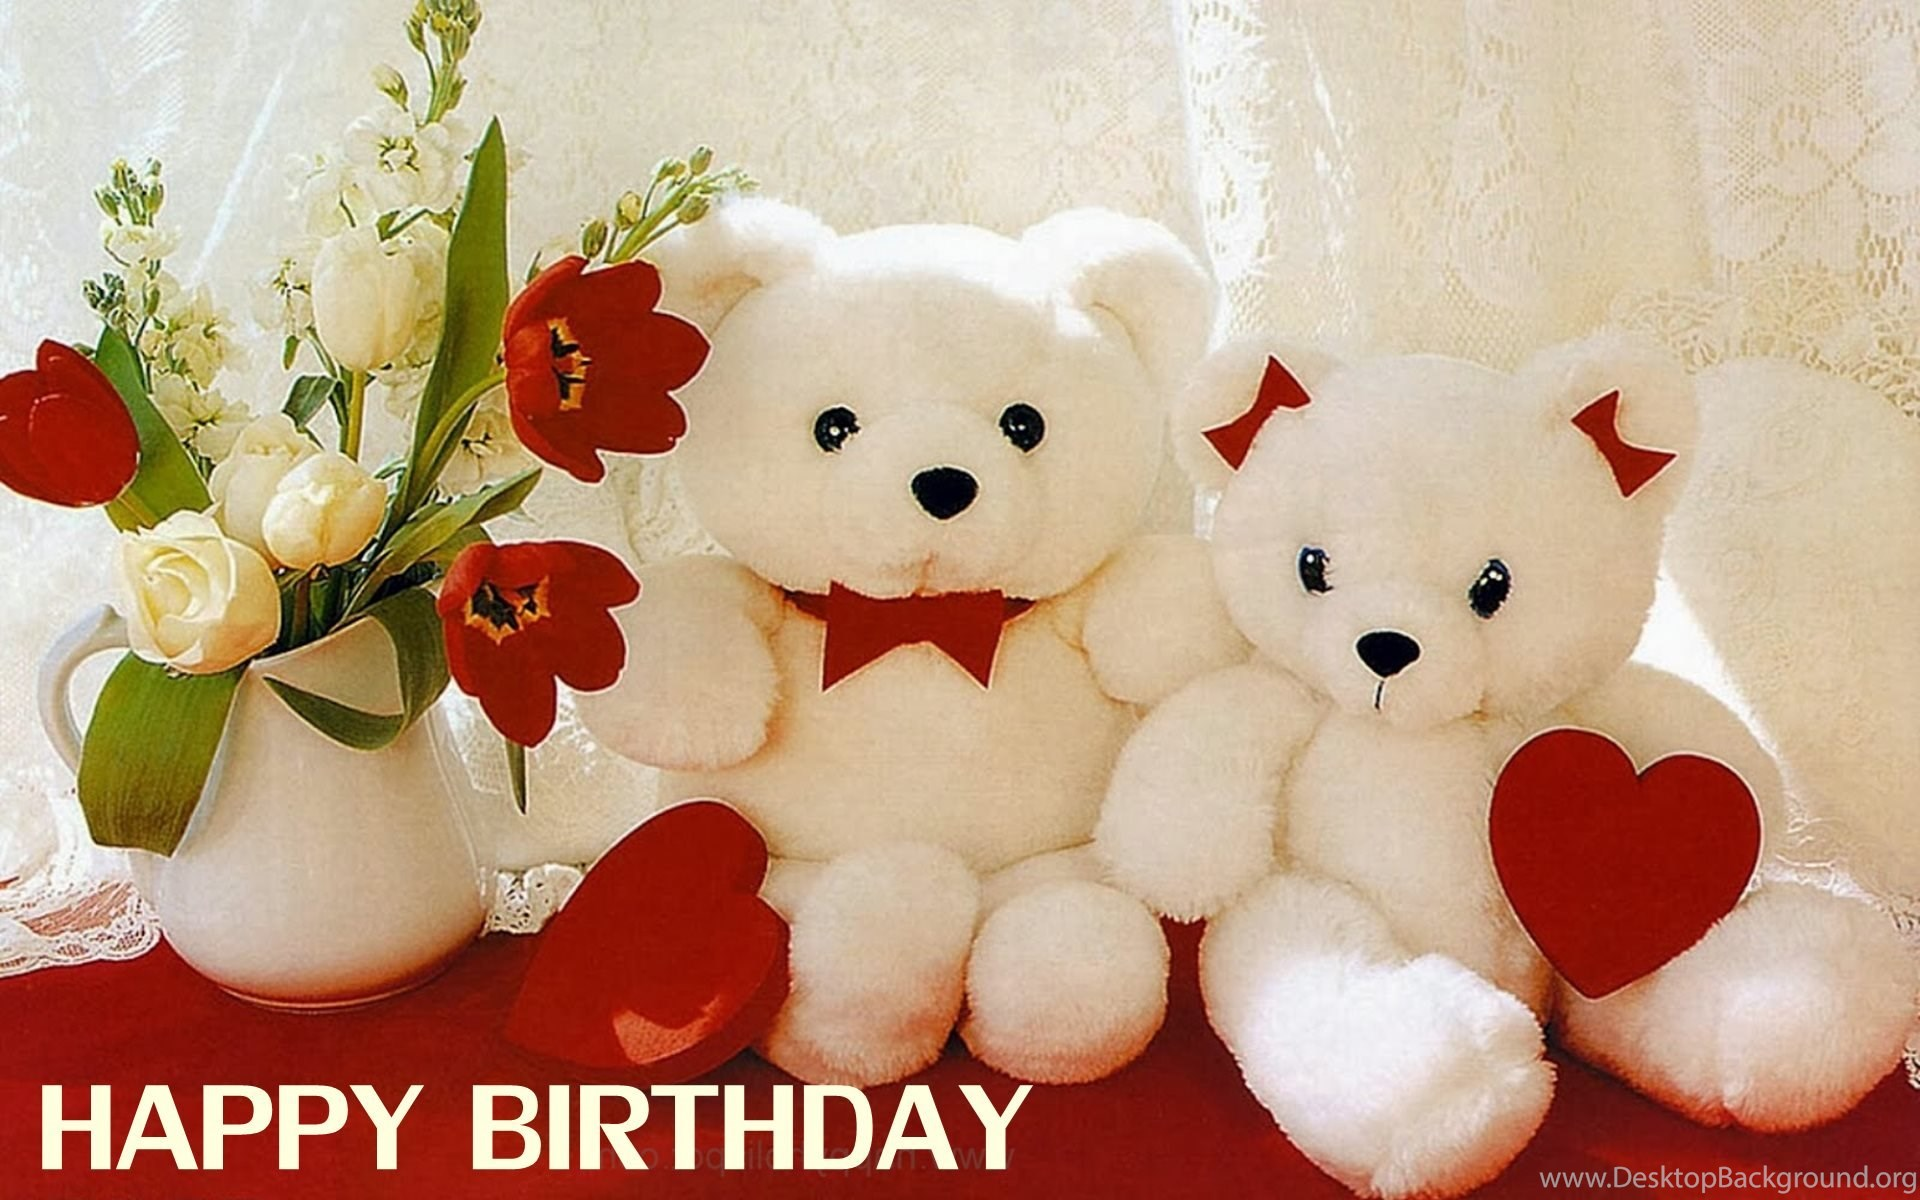 Happy Birthday Wishes With Cute Teddy Bear HD Wallpapers